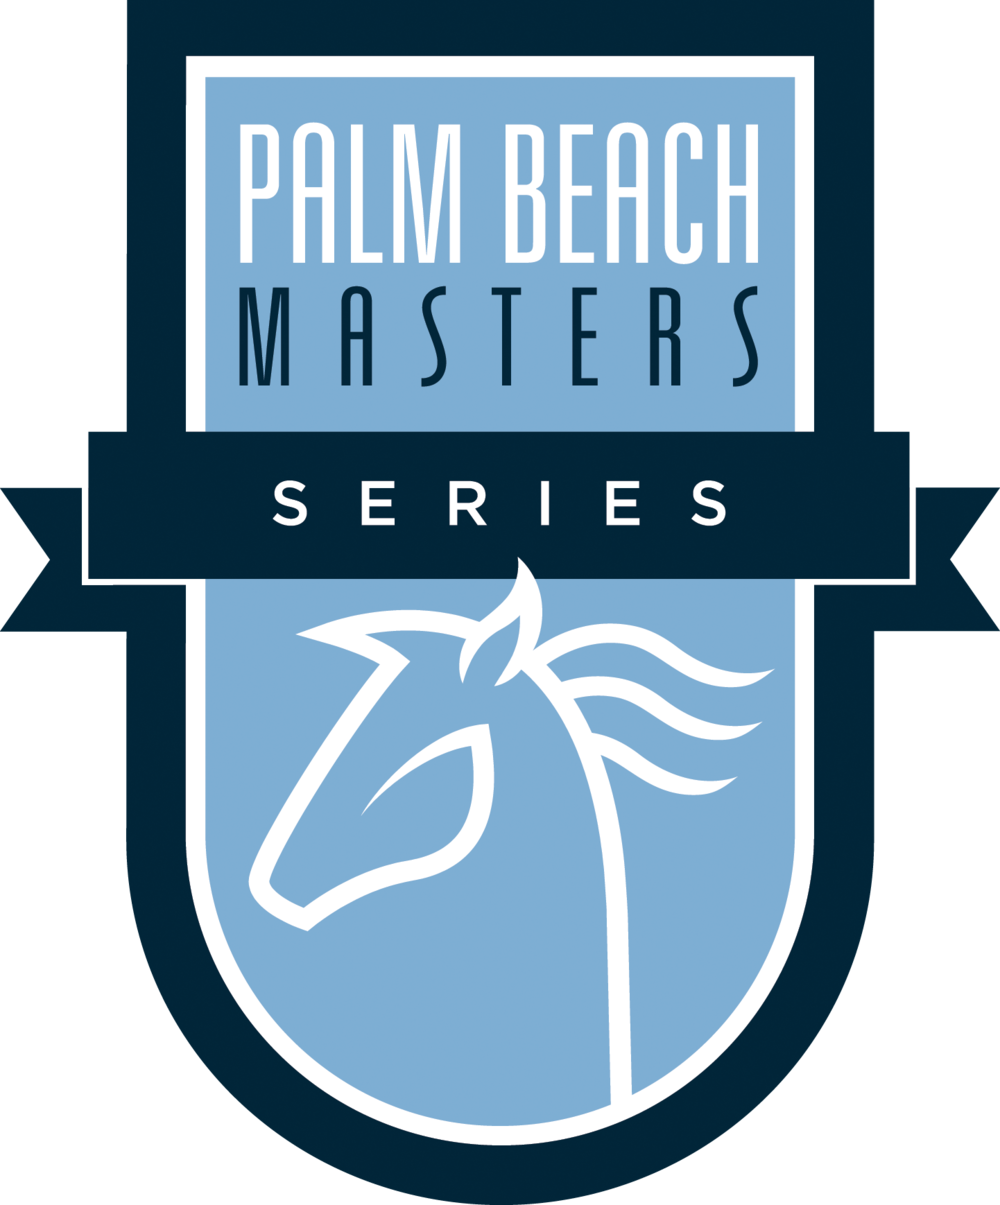 Palm Beach Masters Series Logo FINAL.png